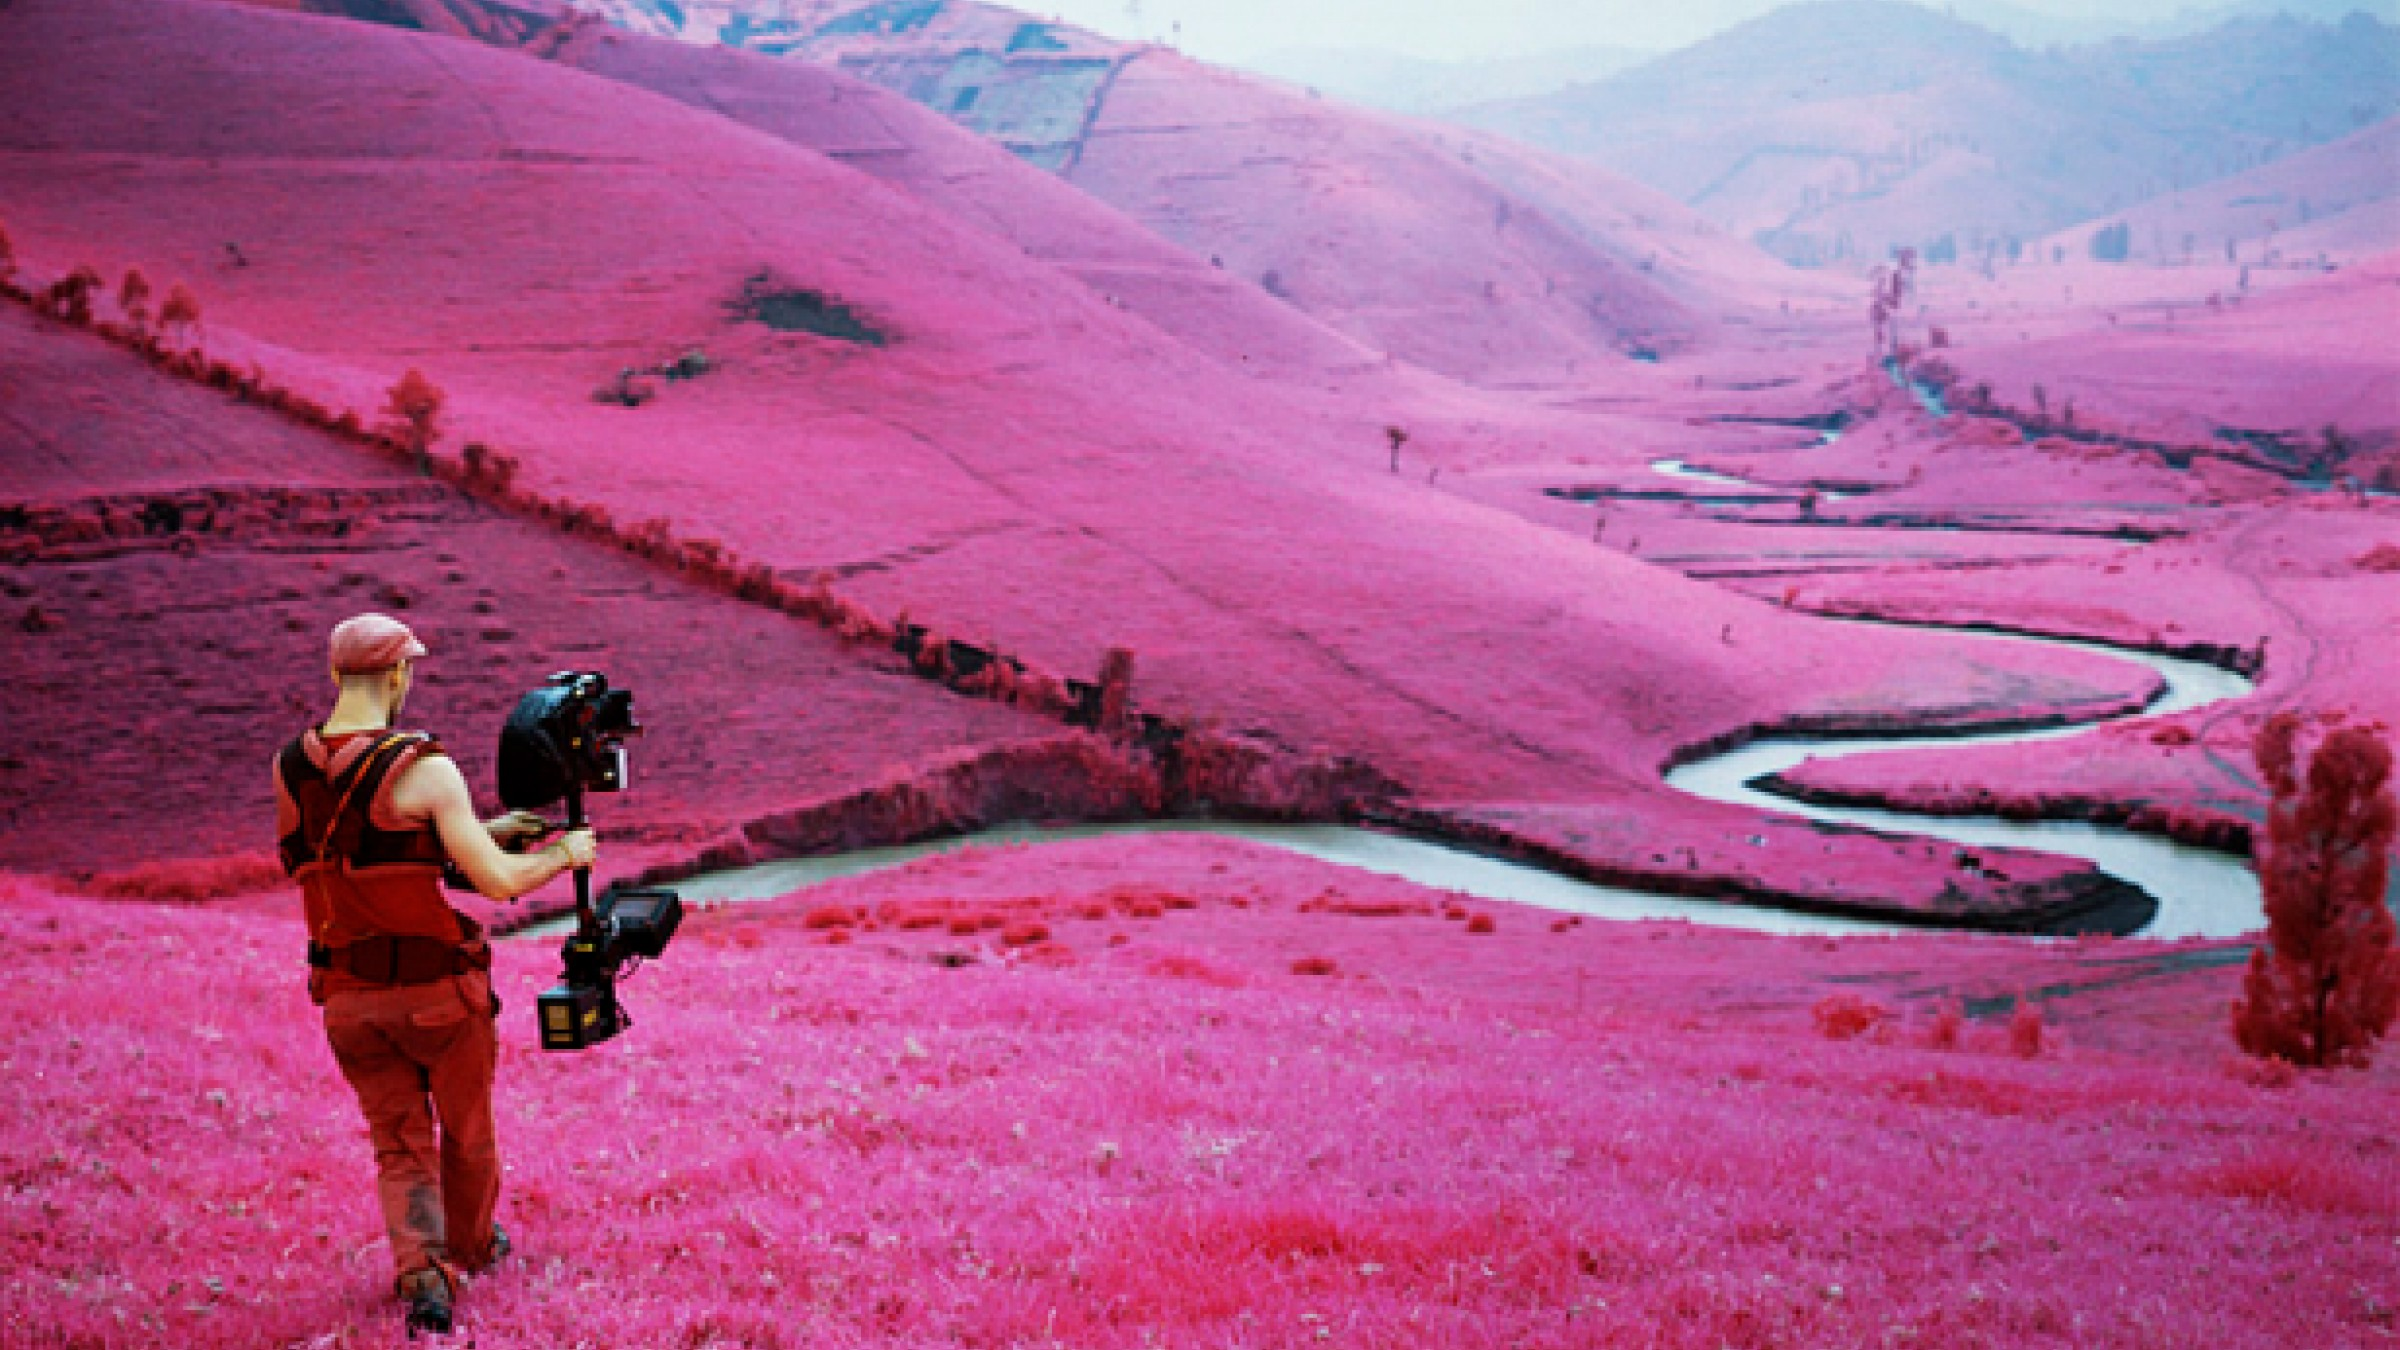 Using Infrared Cinematography to Make the Invisible, Visible in the Documentary 'The Enclave'